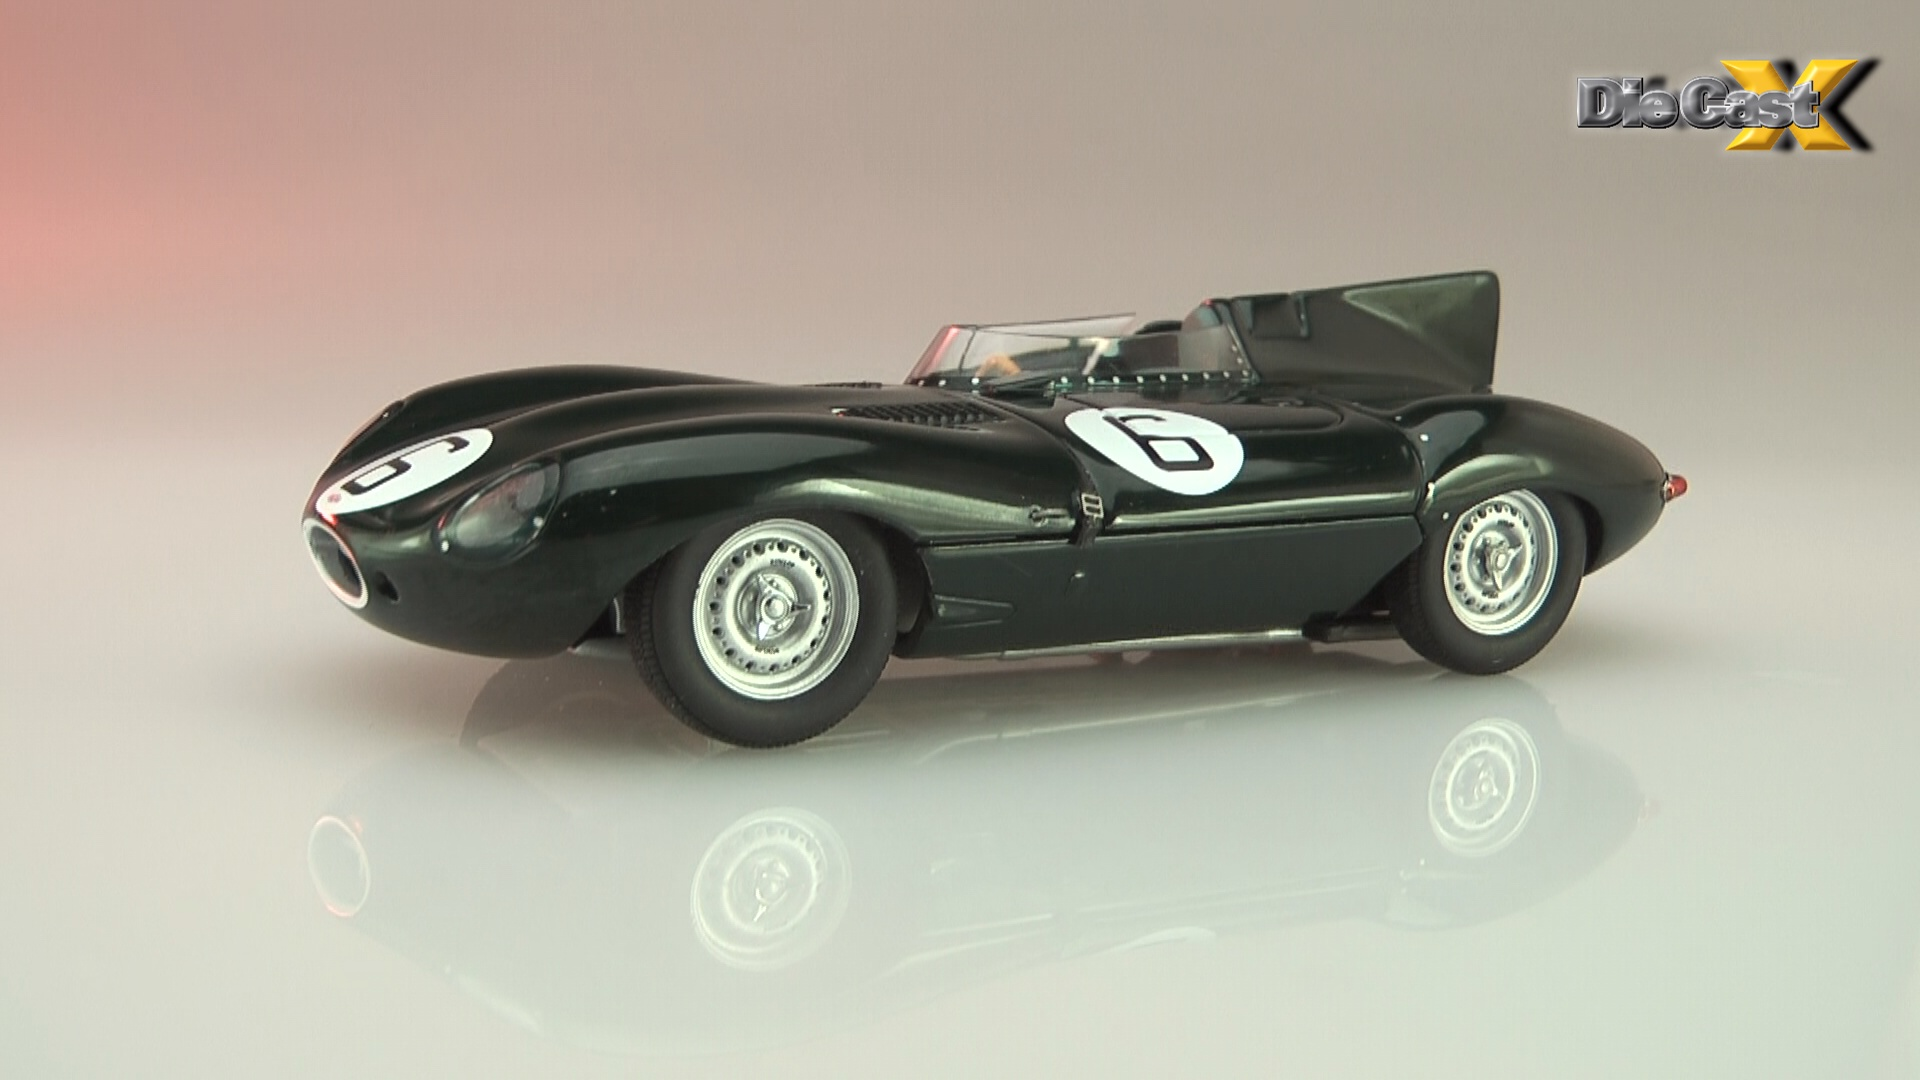 AUTOart 1:43 1955 Jaguar D-Type Le Mans: Tragic Magic